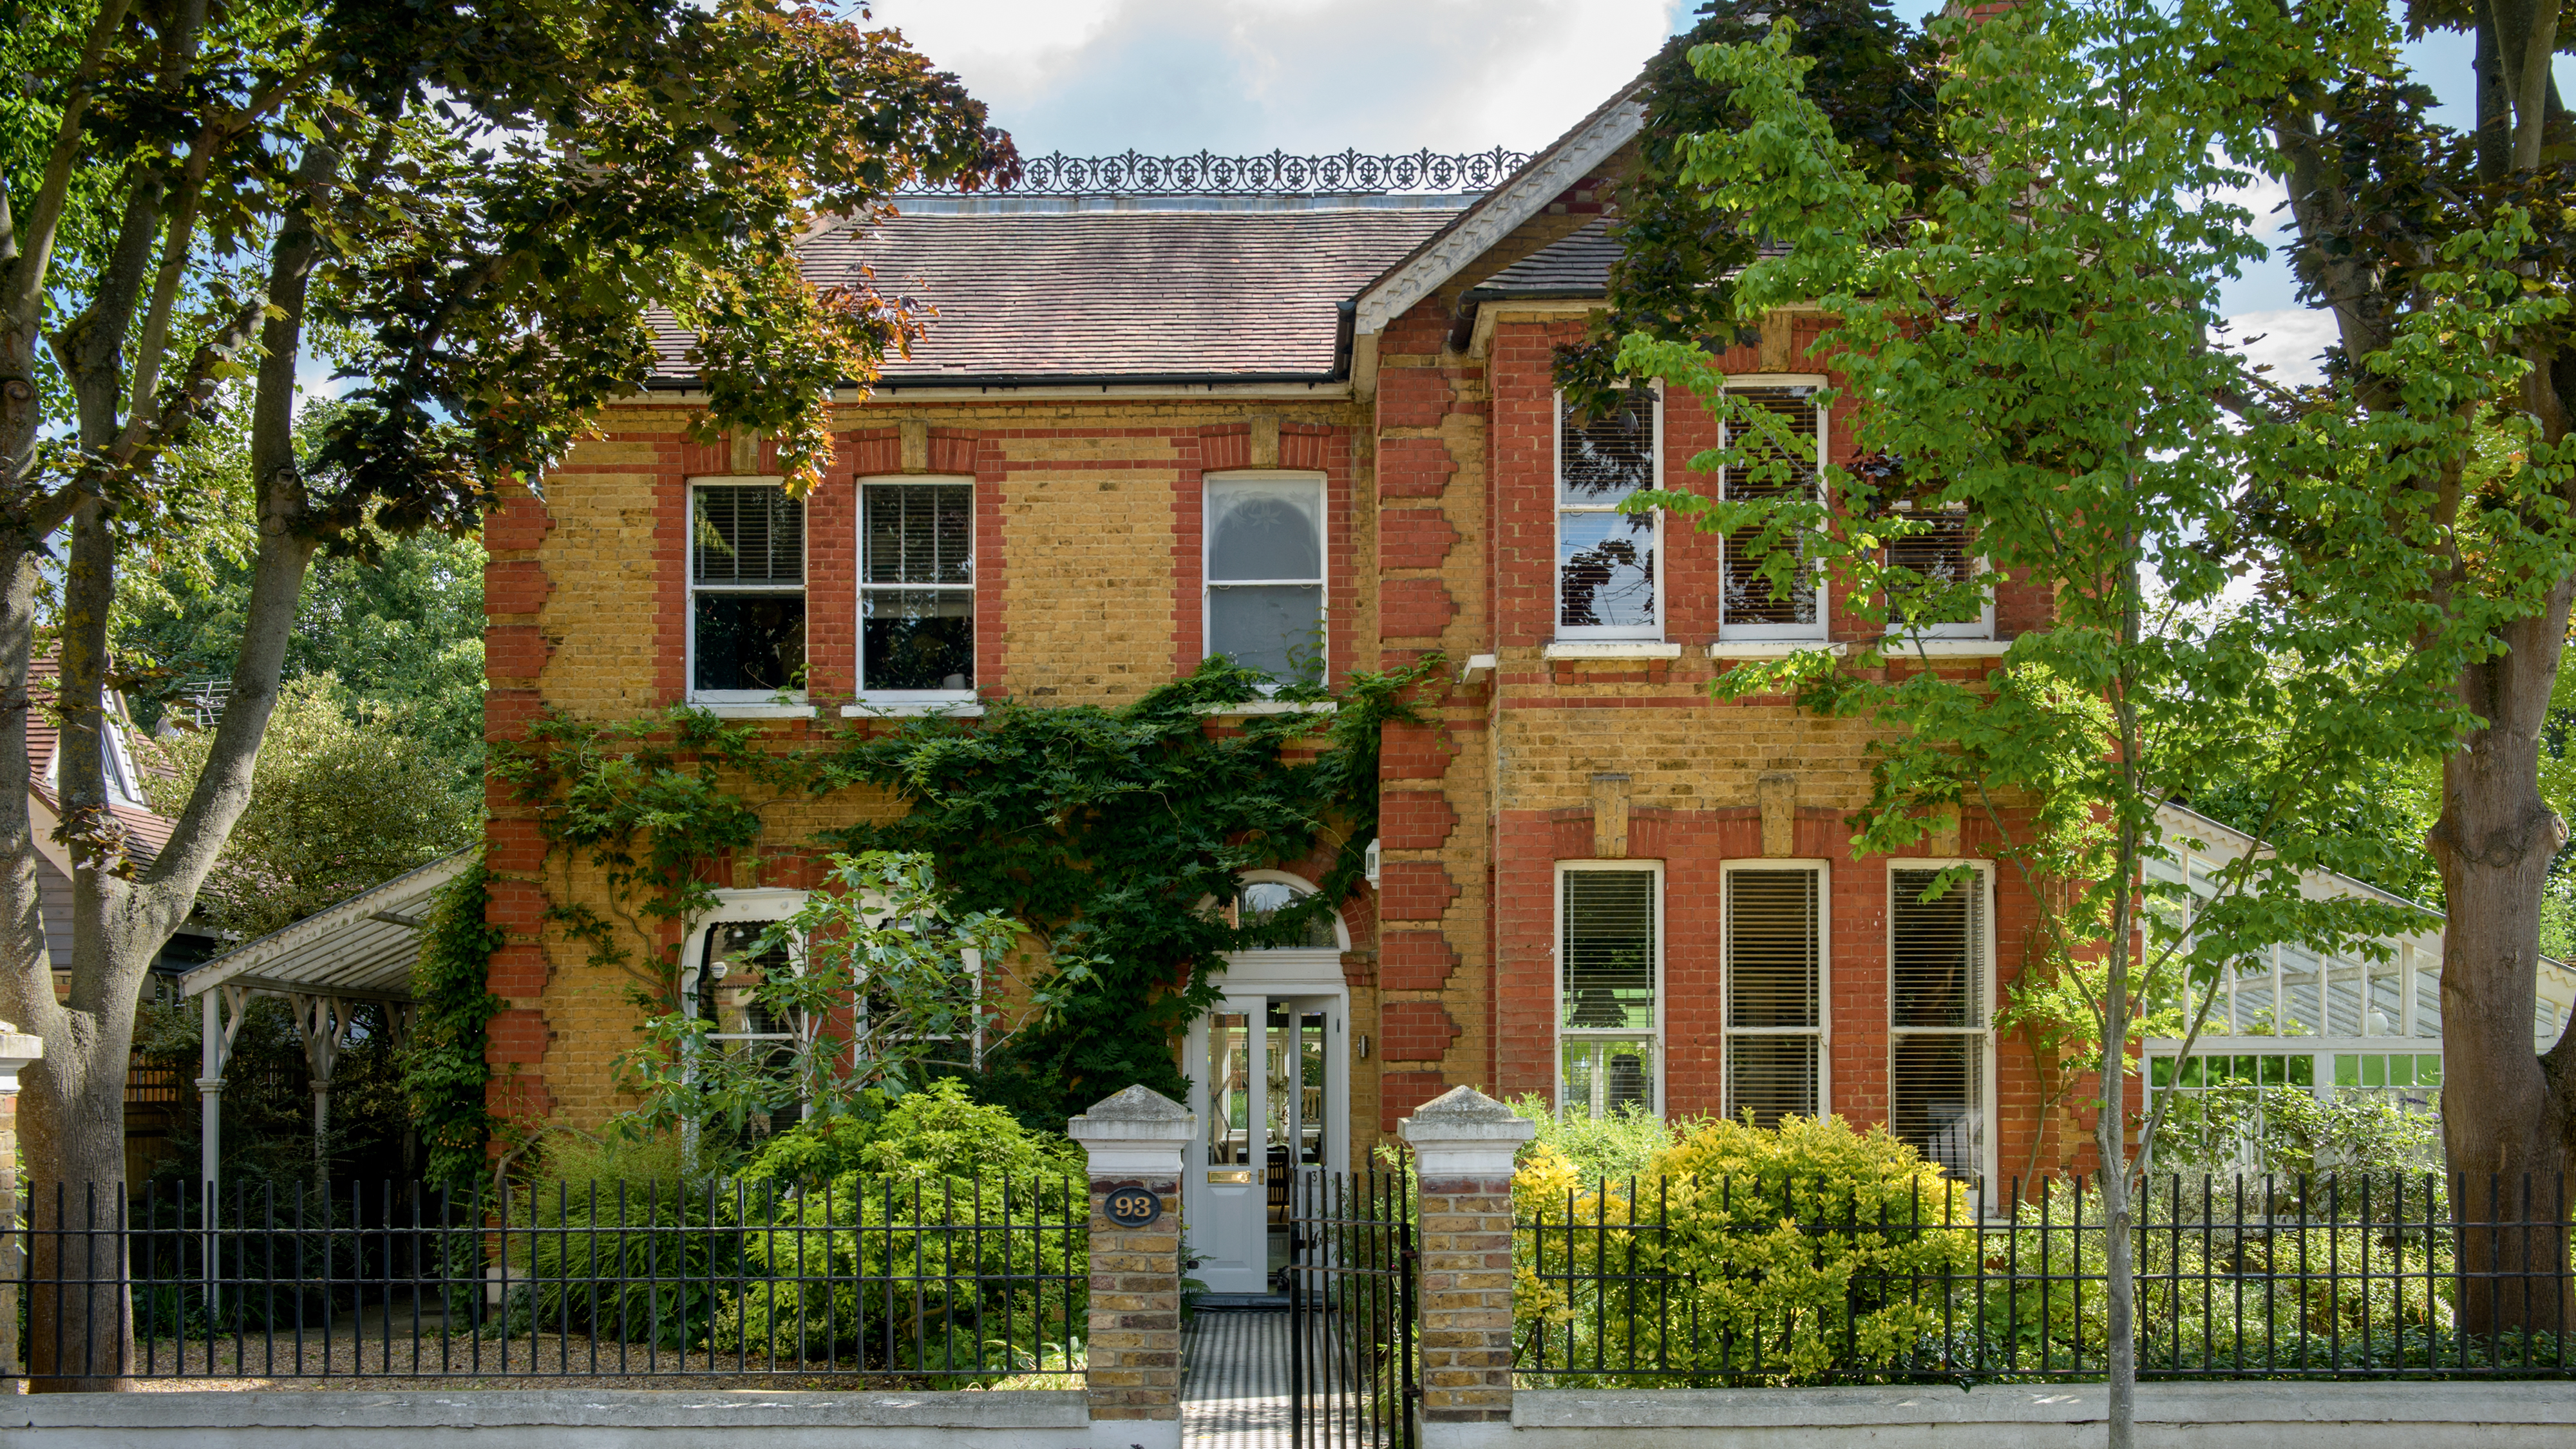 The Victorian House Is A Ubiqitous Sight Across Uk Towns And Cities Discover Design Influences Identify Key Architectural Details And Solve Maintenance Issues With Our Expert Guide Real Homes